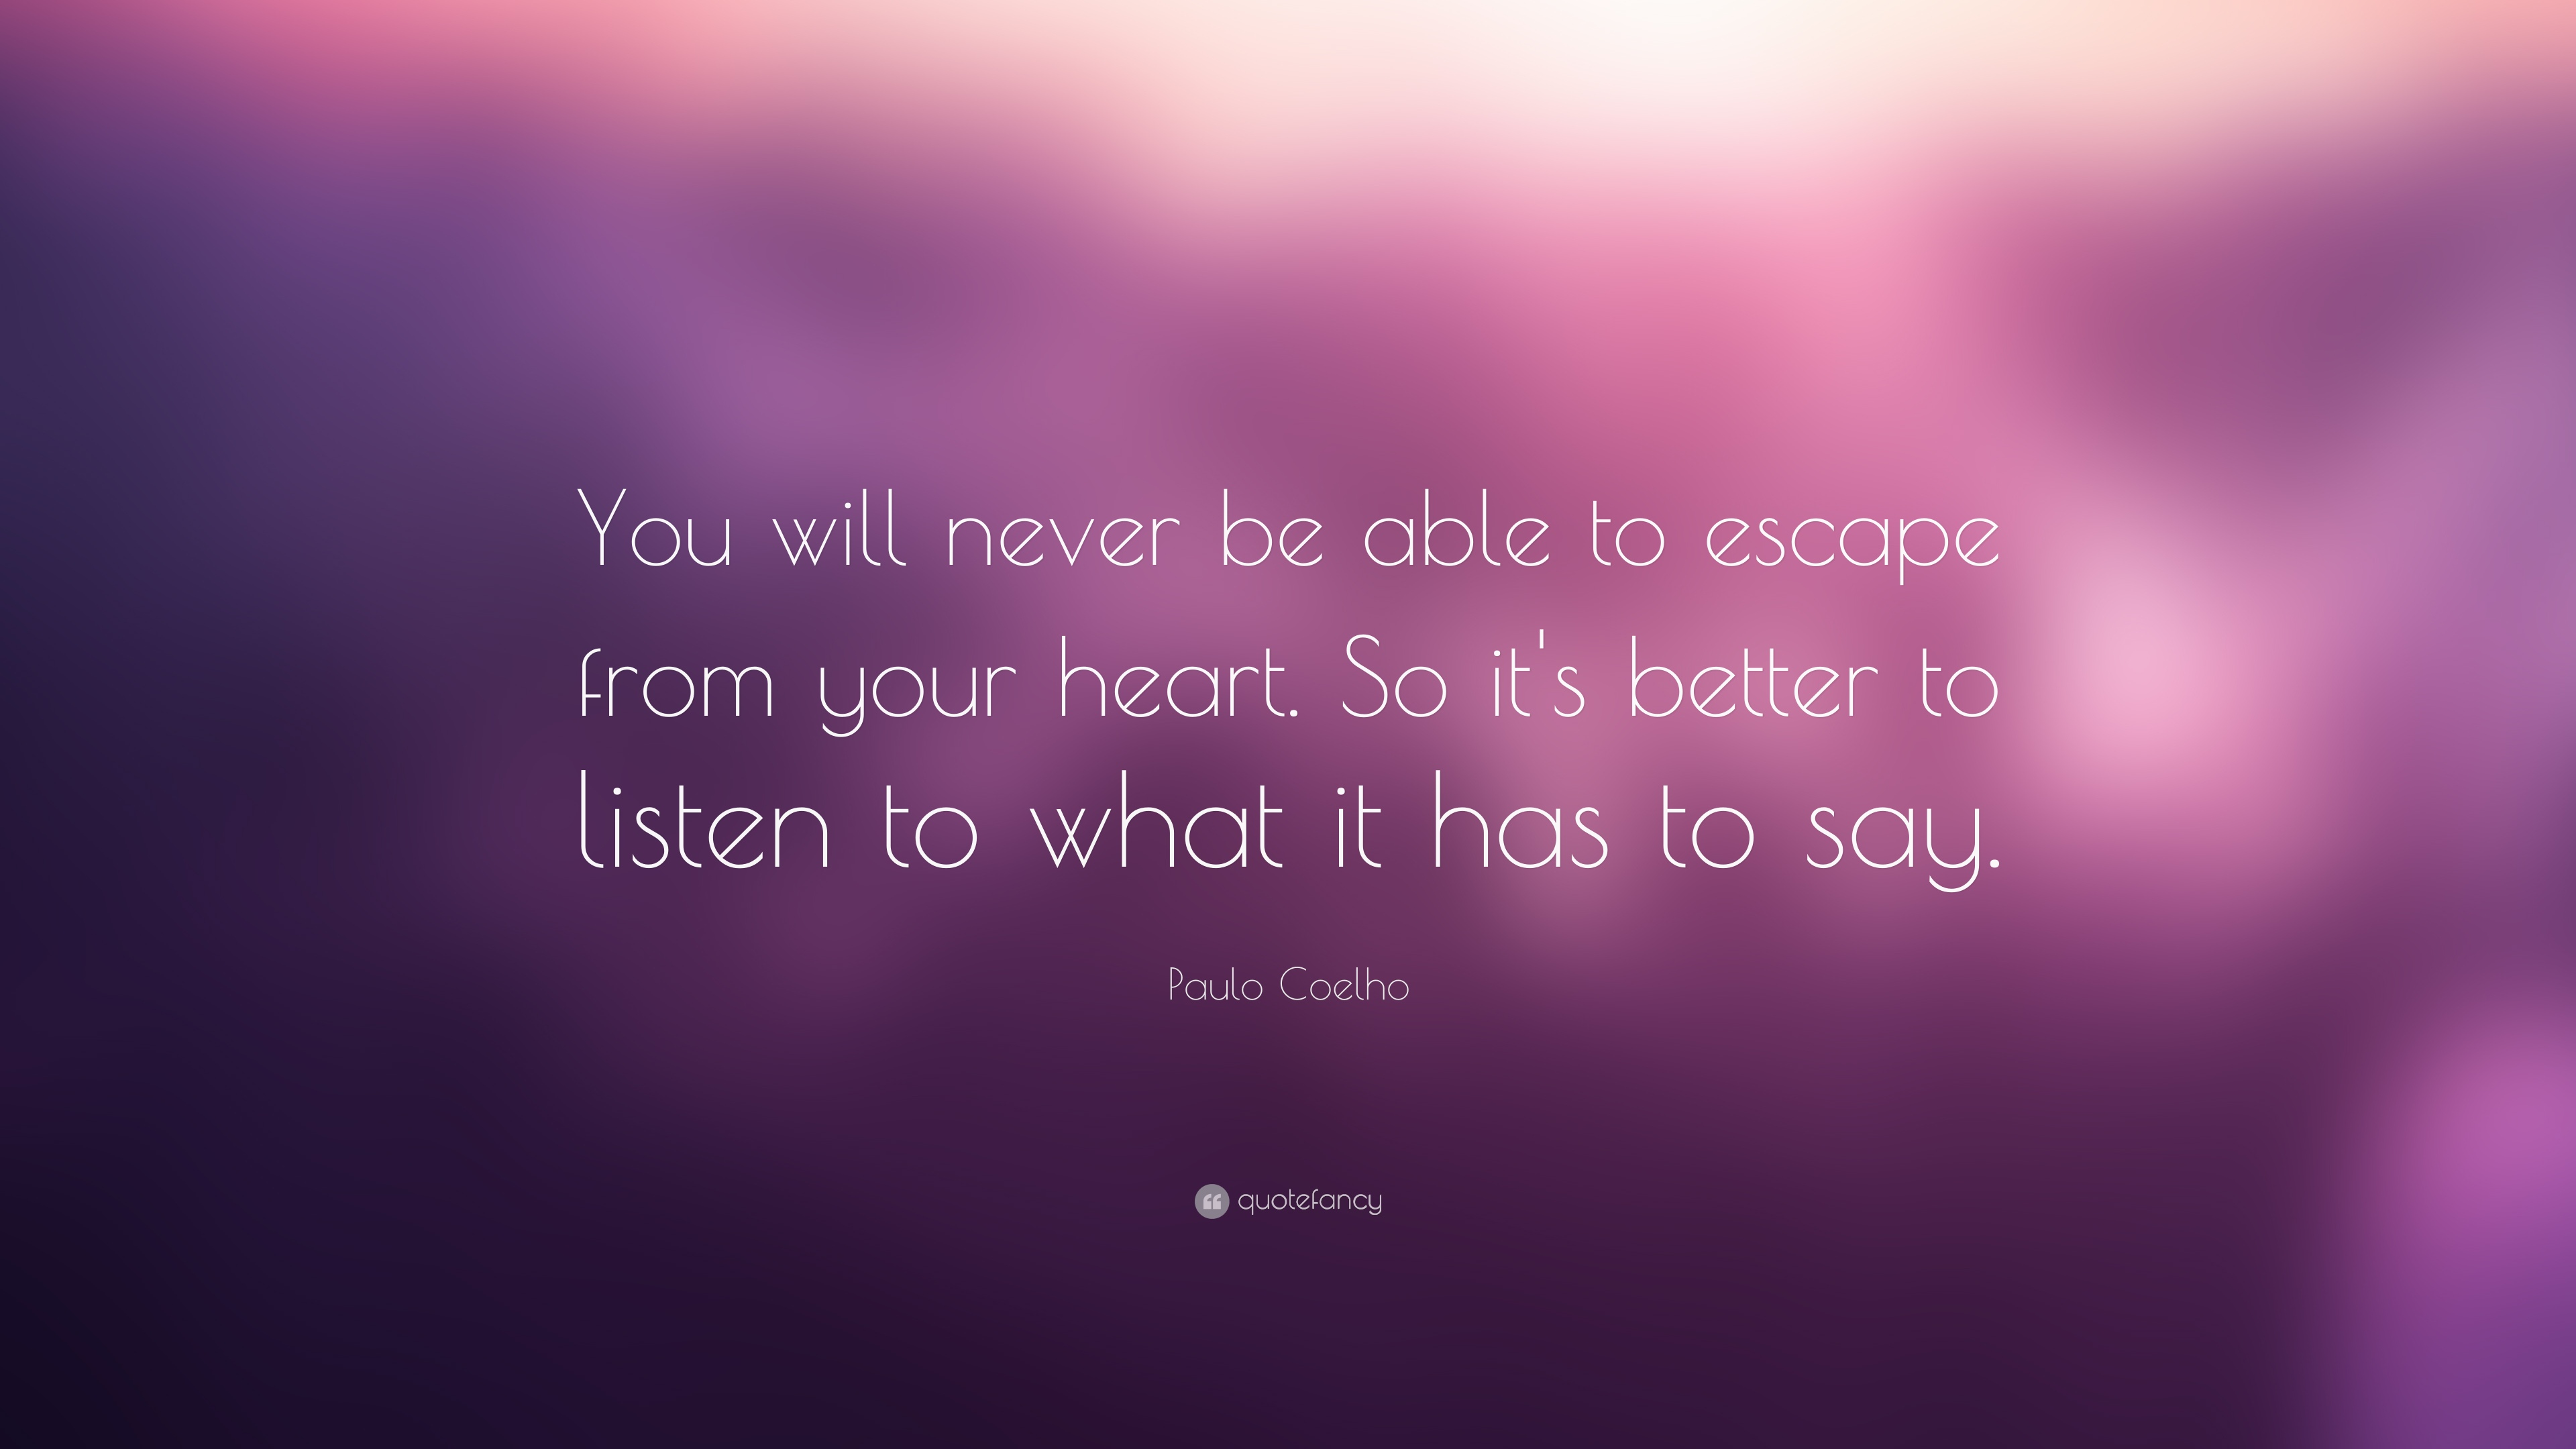 paulo coelho quote �you will never be able to escape from